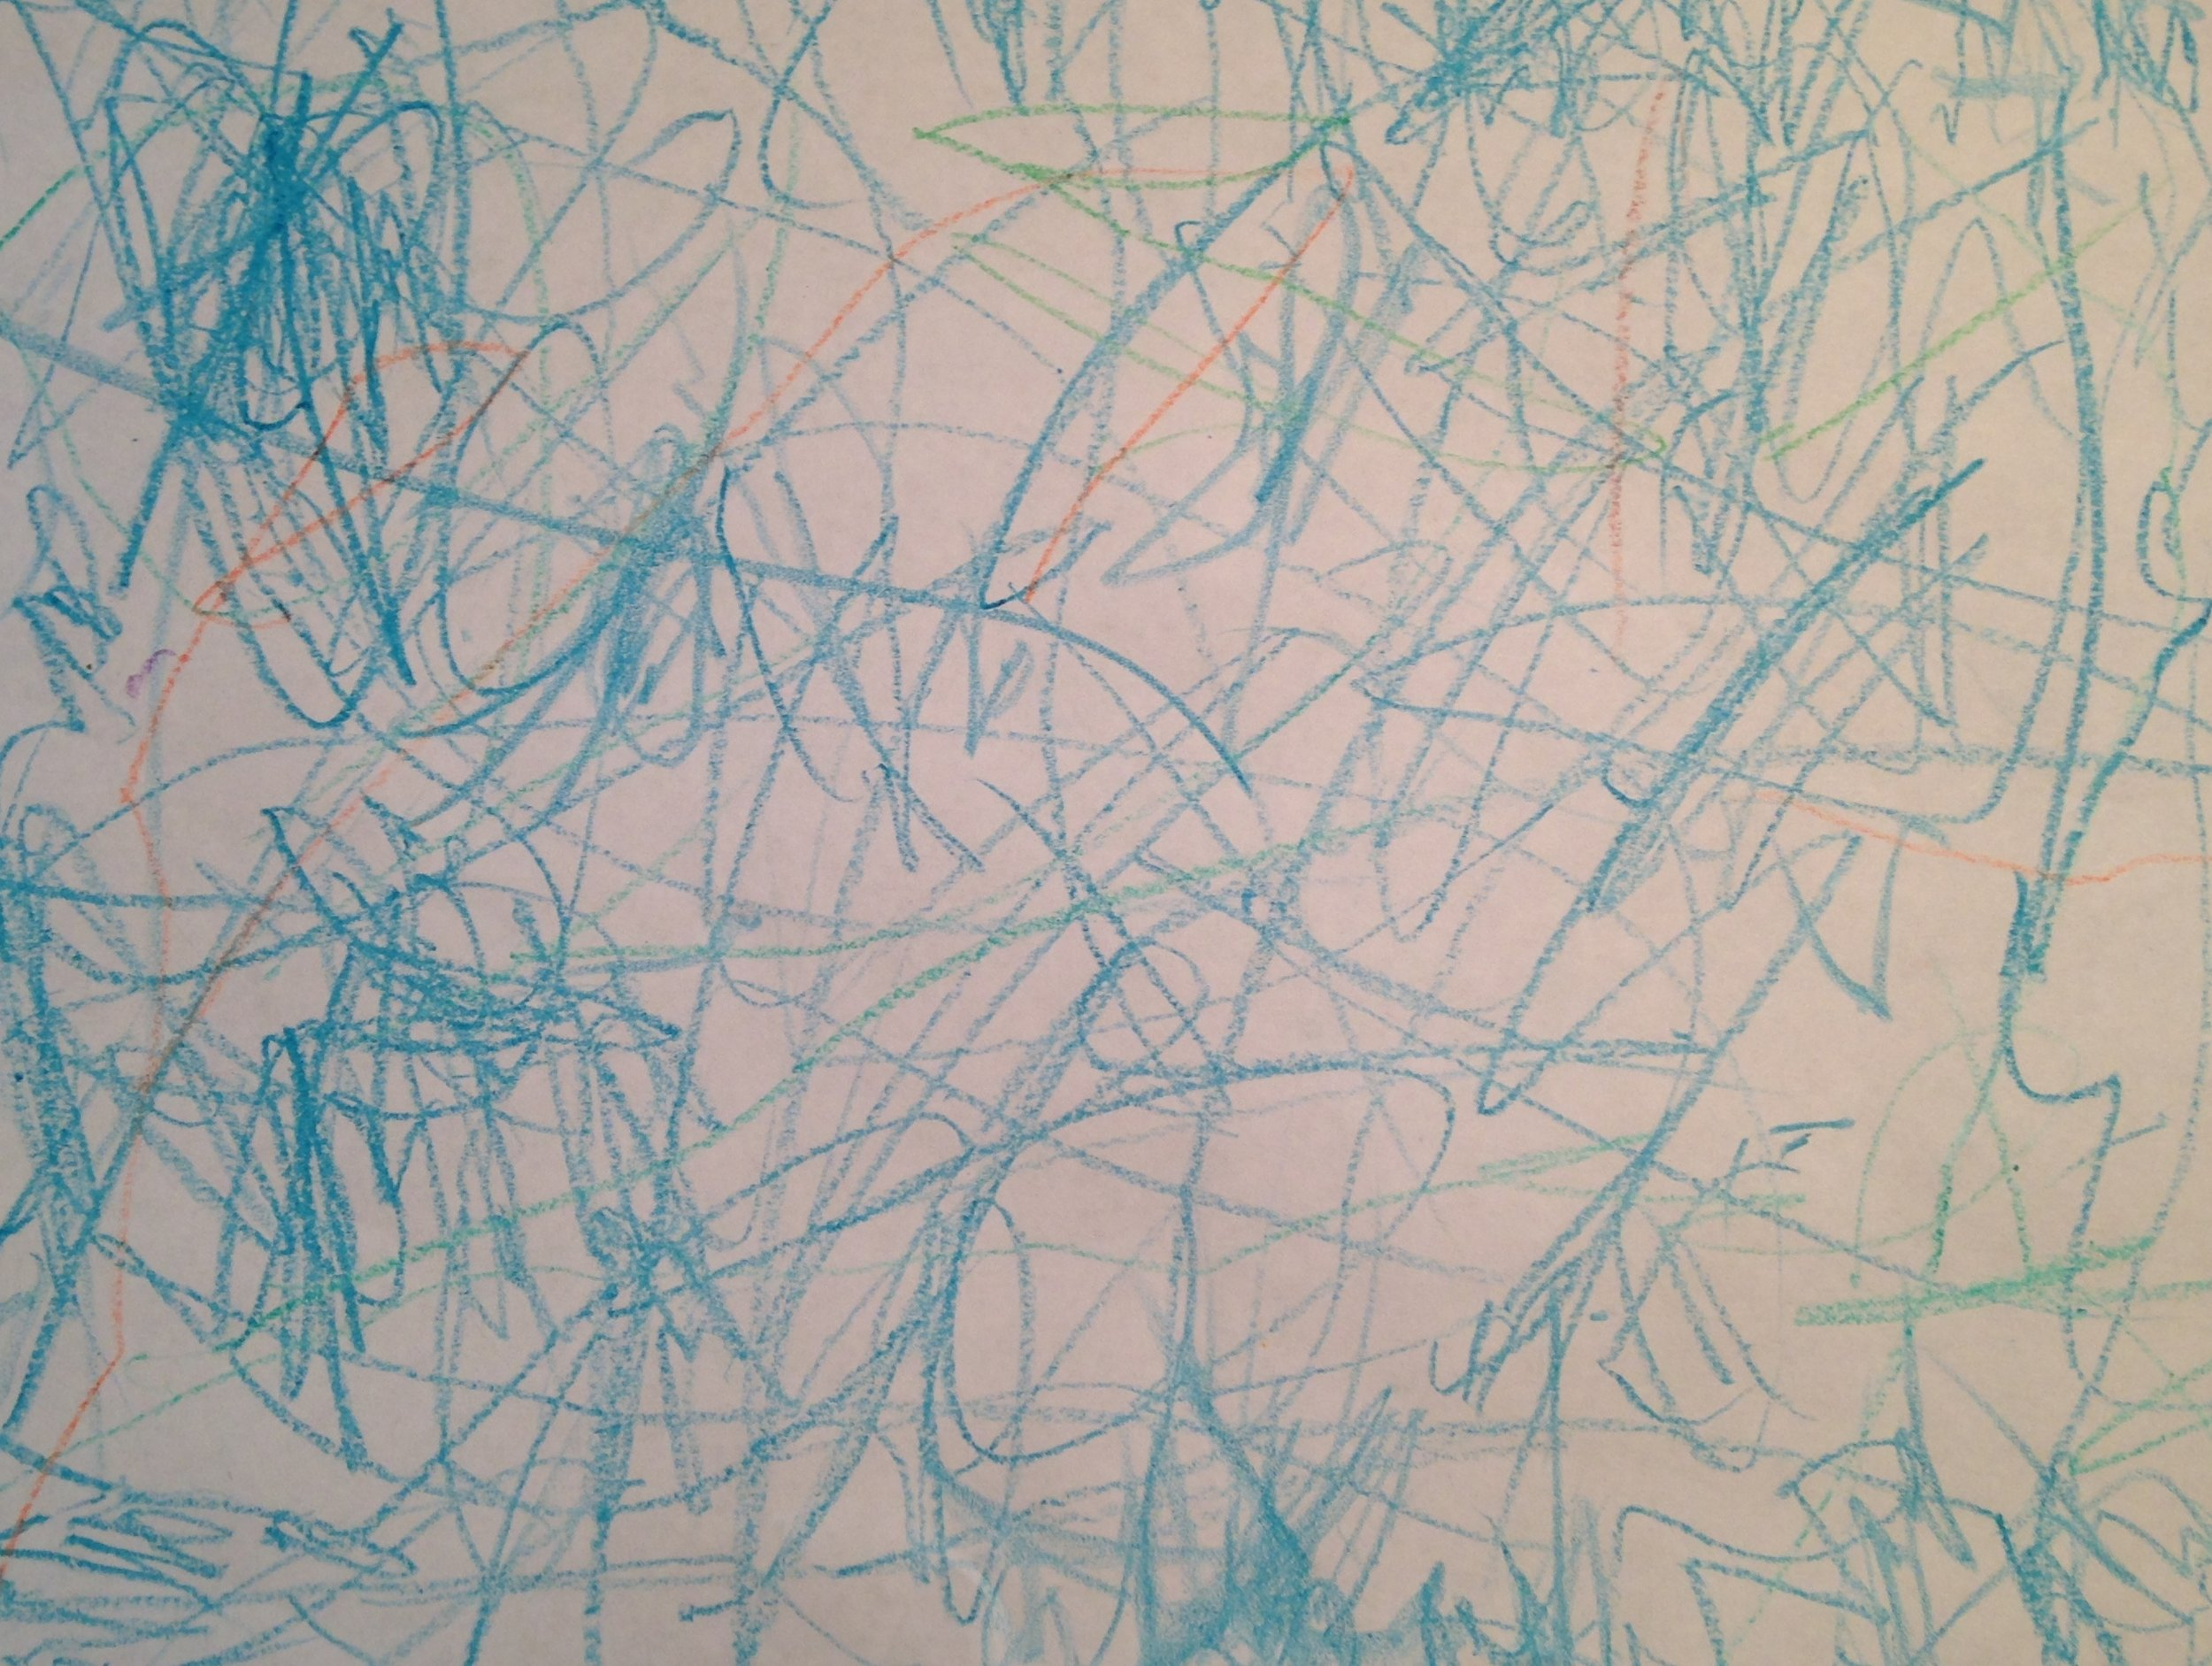 Art by a 26 month old